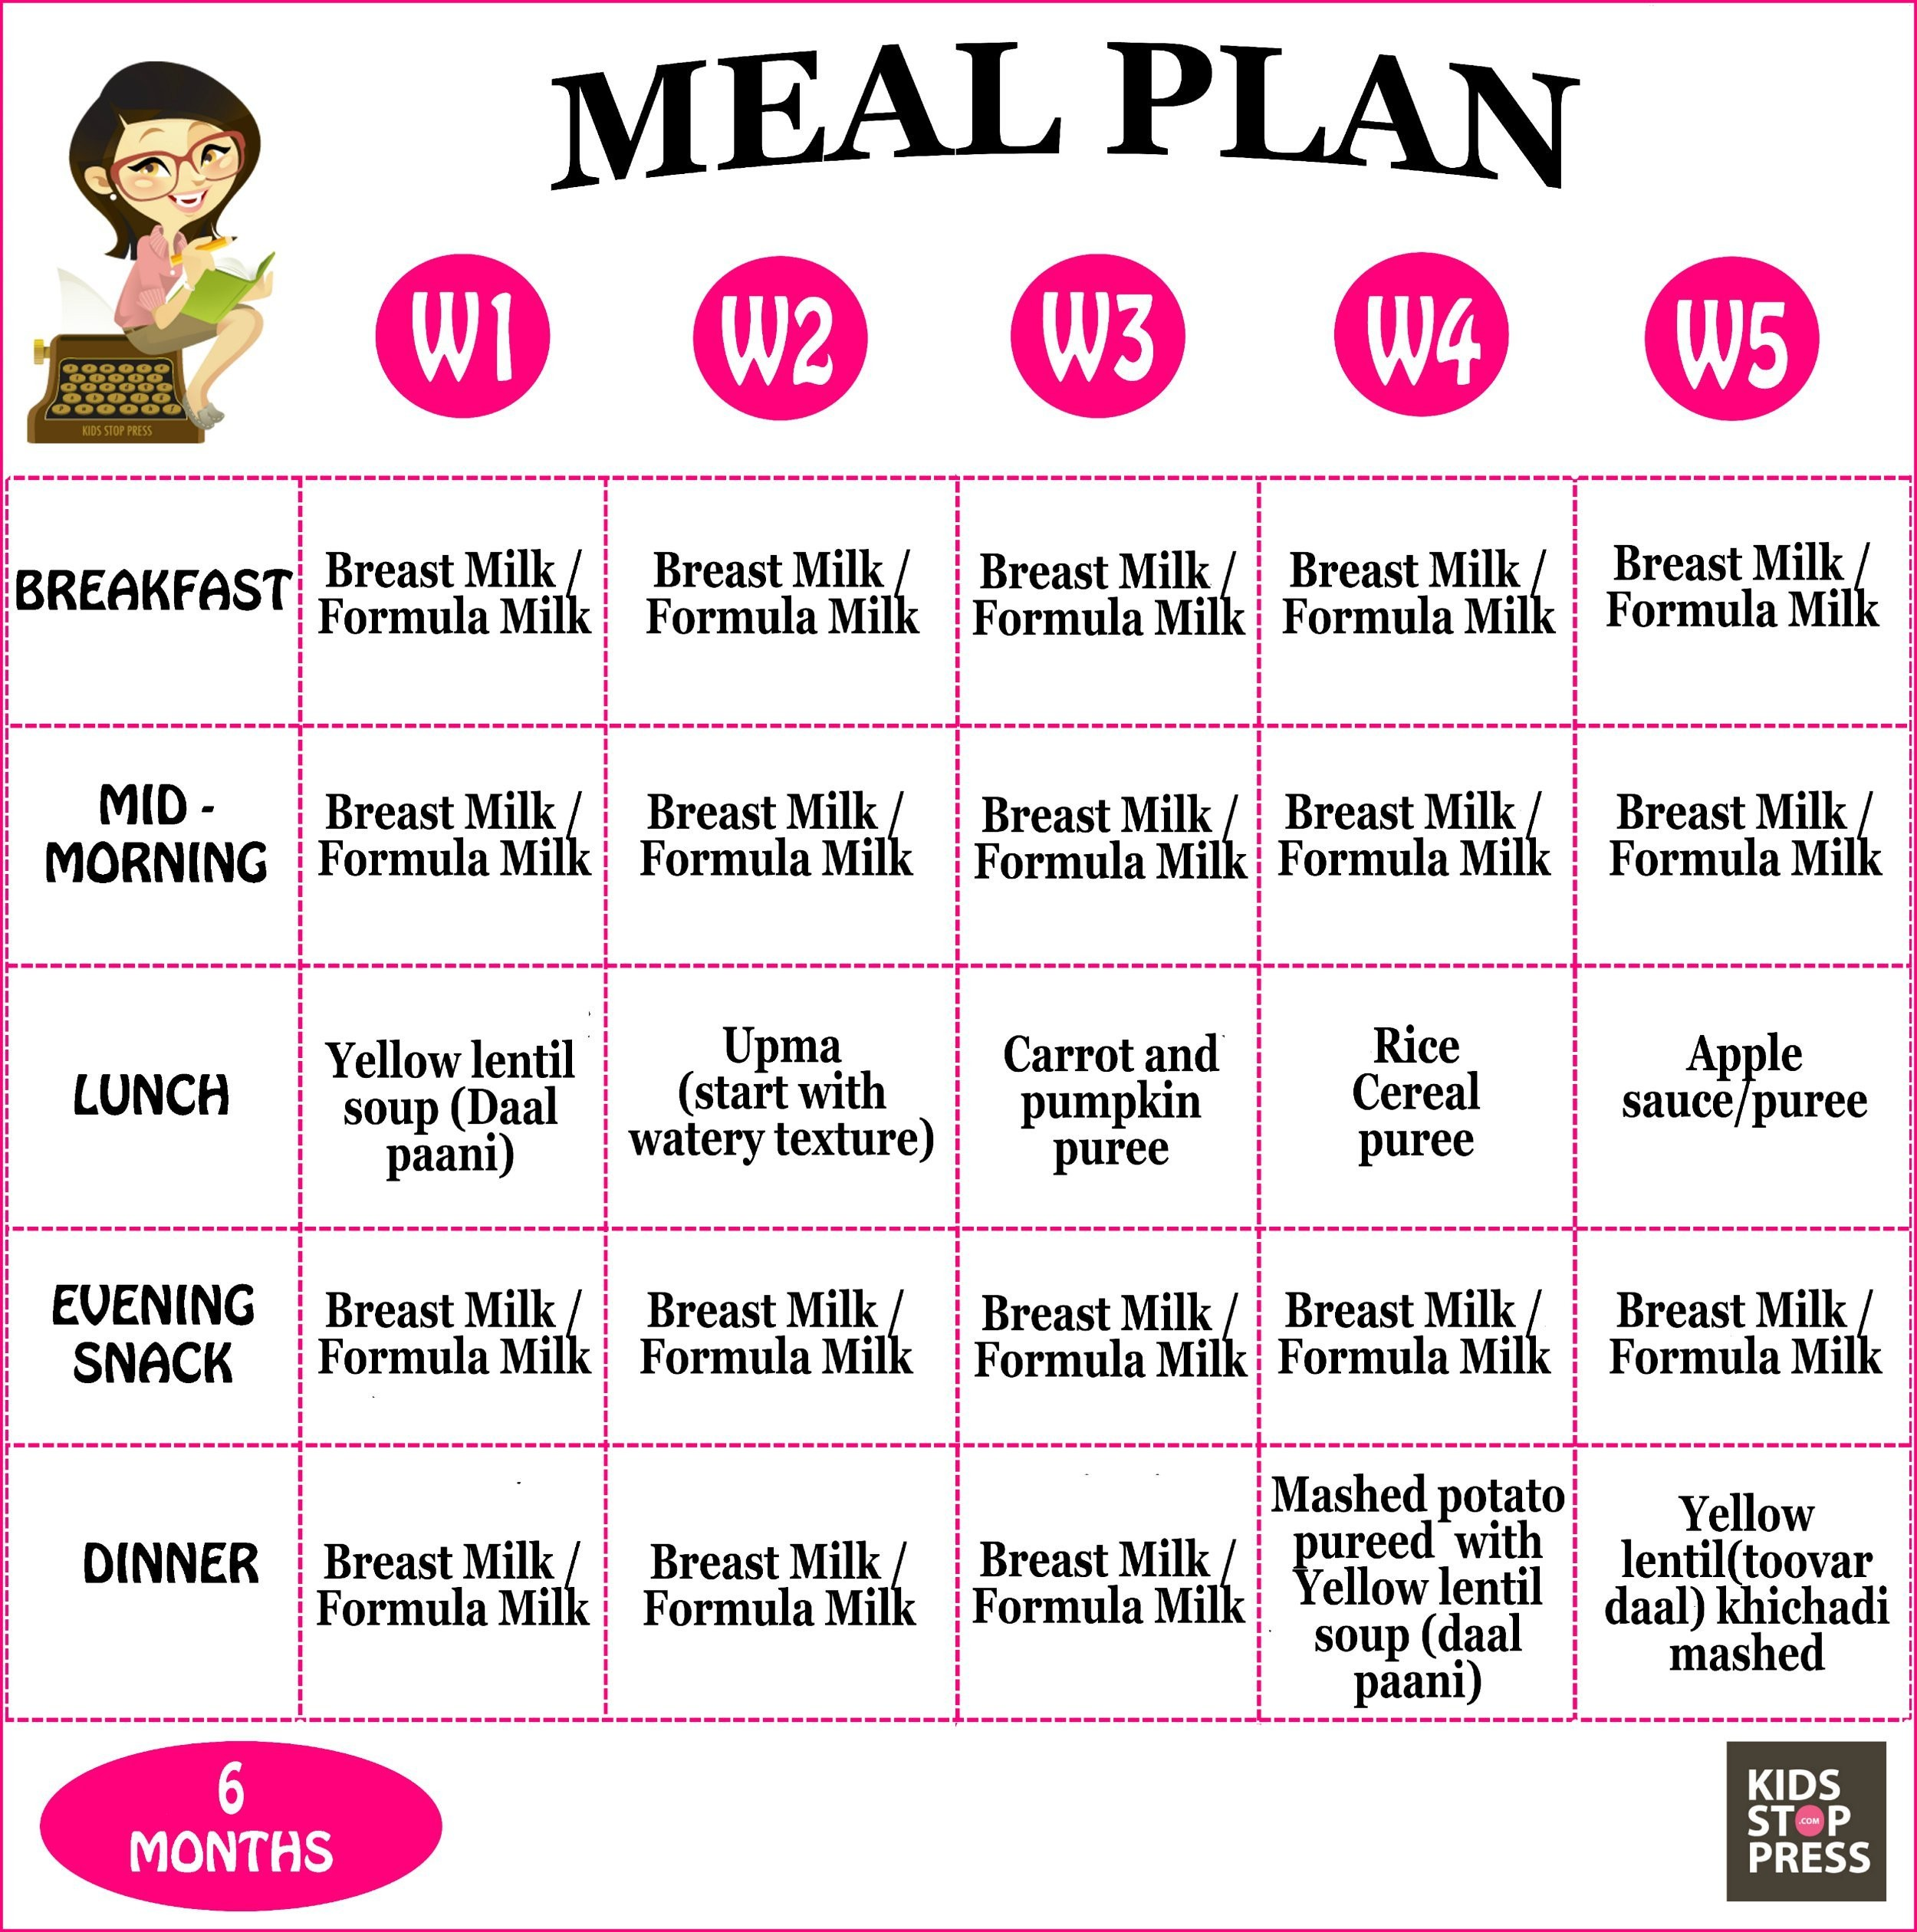 meal plan 6 month old  A Weekly Meal Plan Guide For 6 Month Old Indian Babies ..